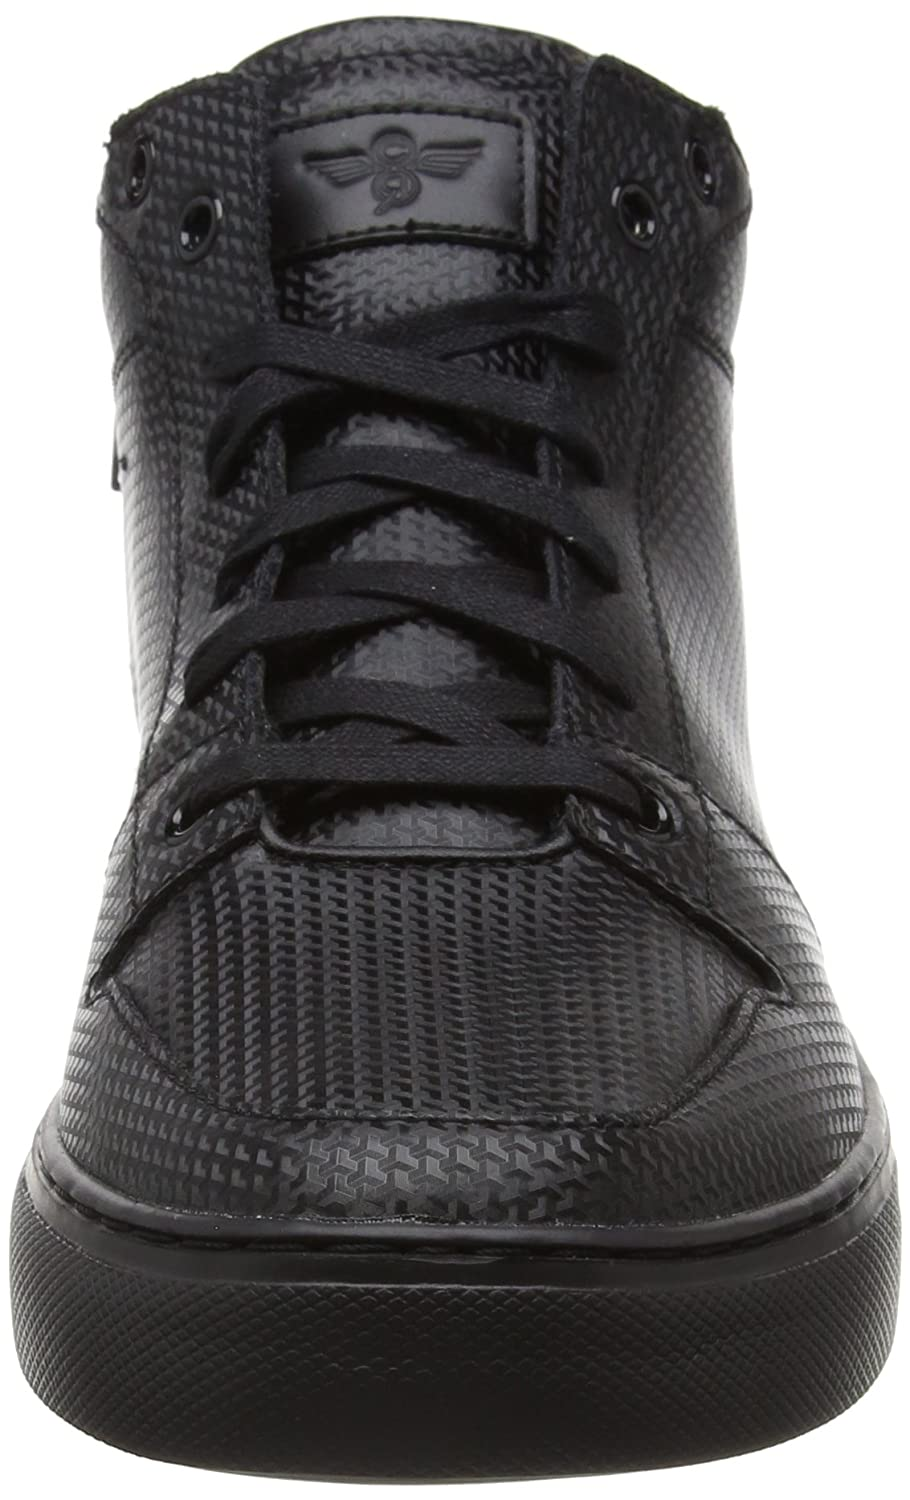 Creative Recreation adonis Men's adonis Recreation mid Fashion Sneaker 11 M US|Black/black B015GIBNW4 01f7d8